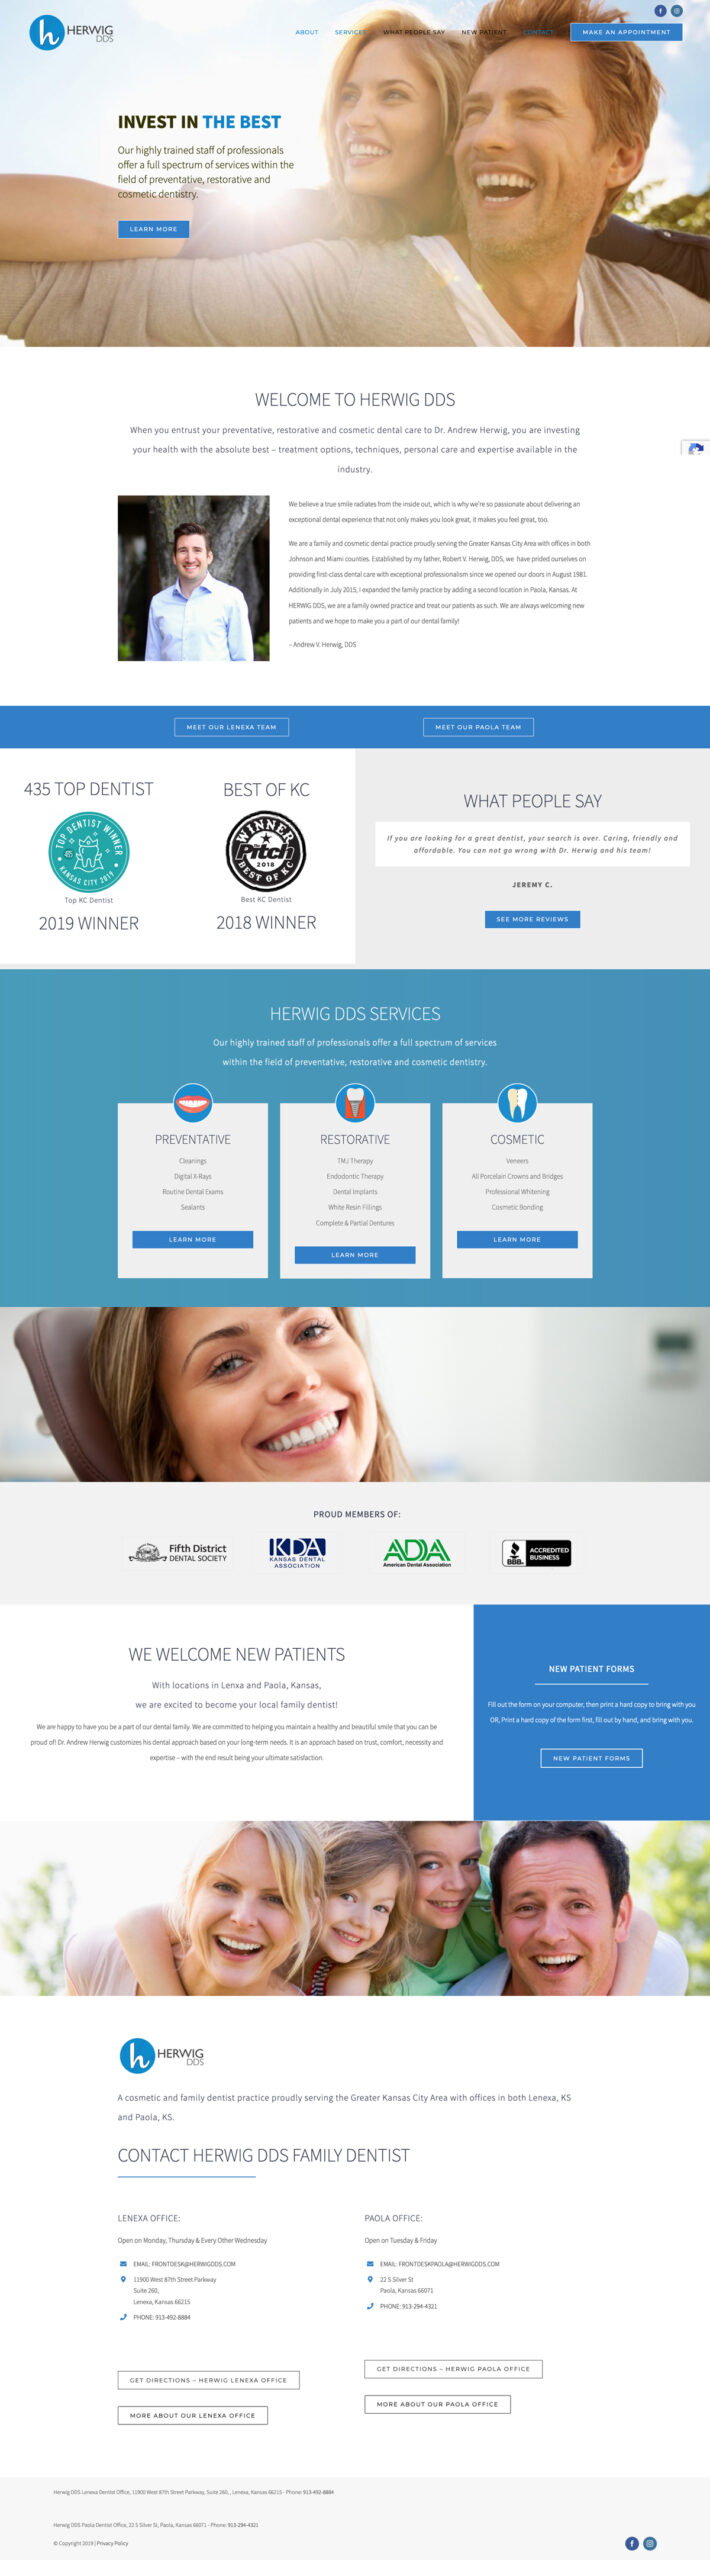 Web Design for Herwig, DDS Home Page